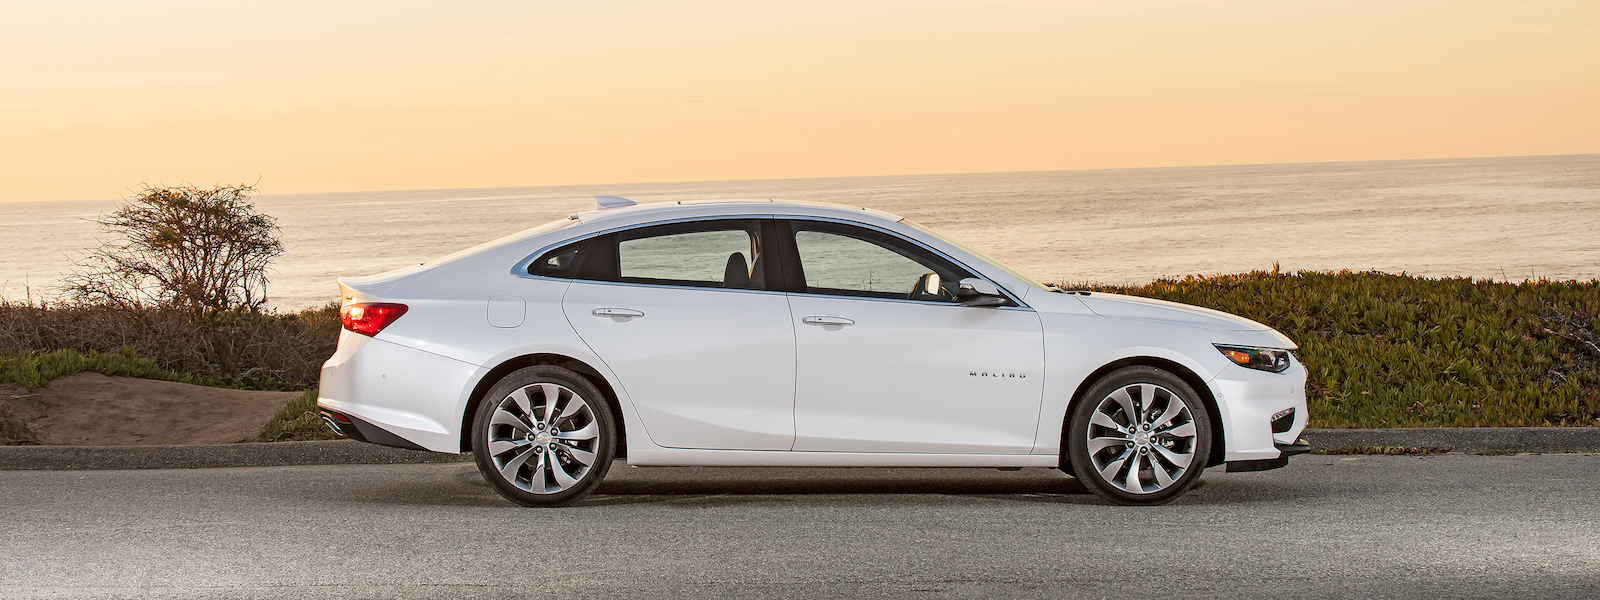 White 2016 Chevy Malibu driving along a beach sunset